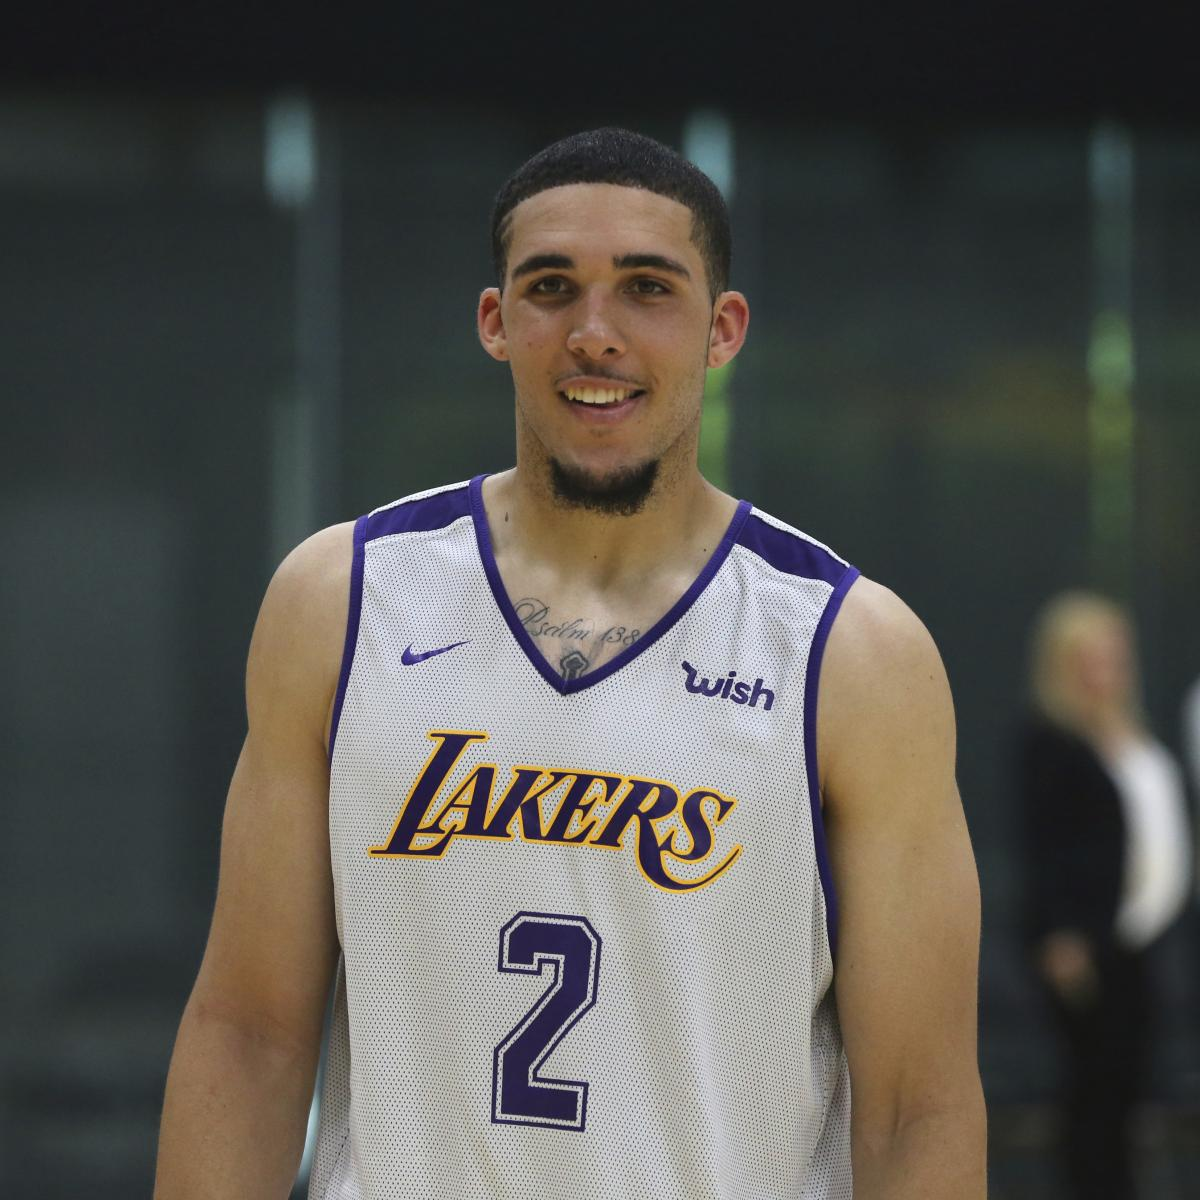 Warriors Come Out To Play Bleacher Report: NBA Draft 2018 Rumors: LiAngelo Ball Working Out With